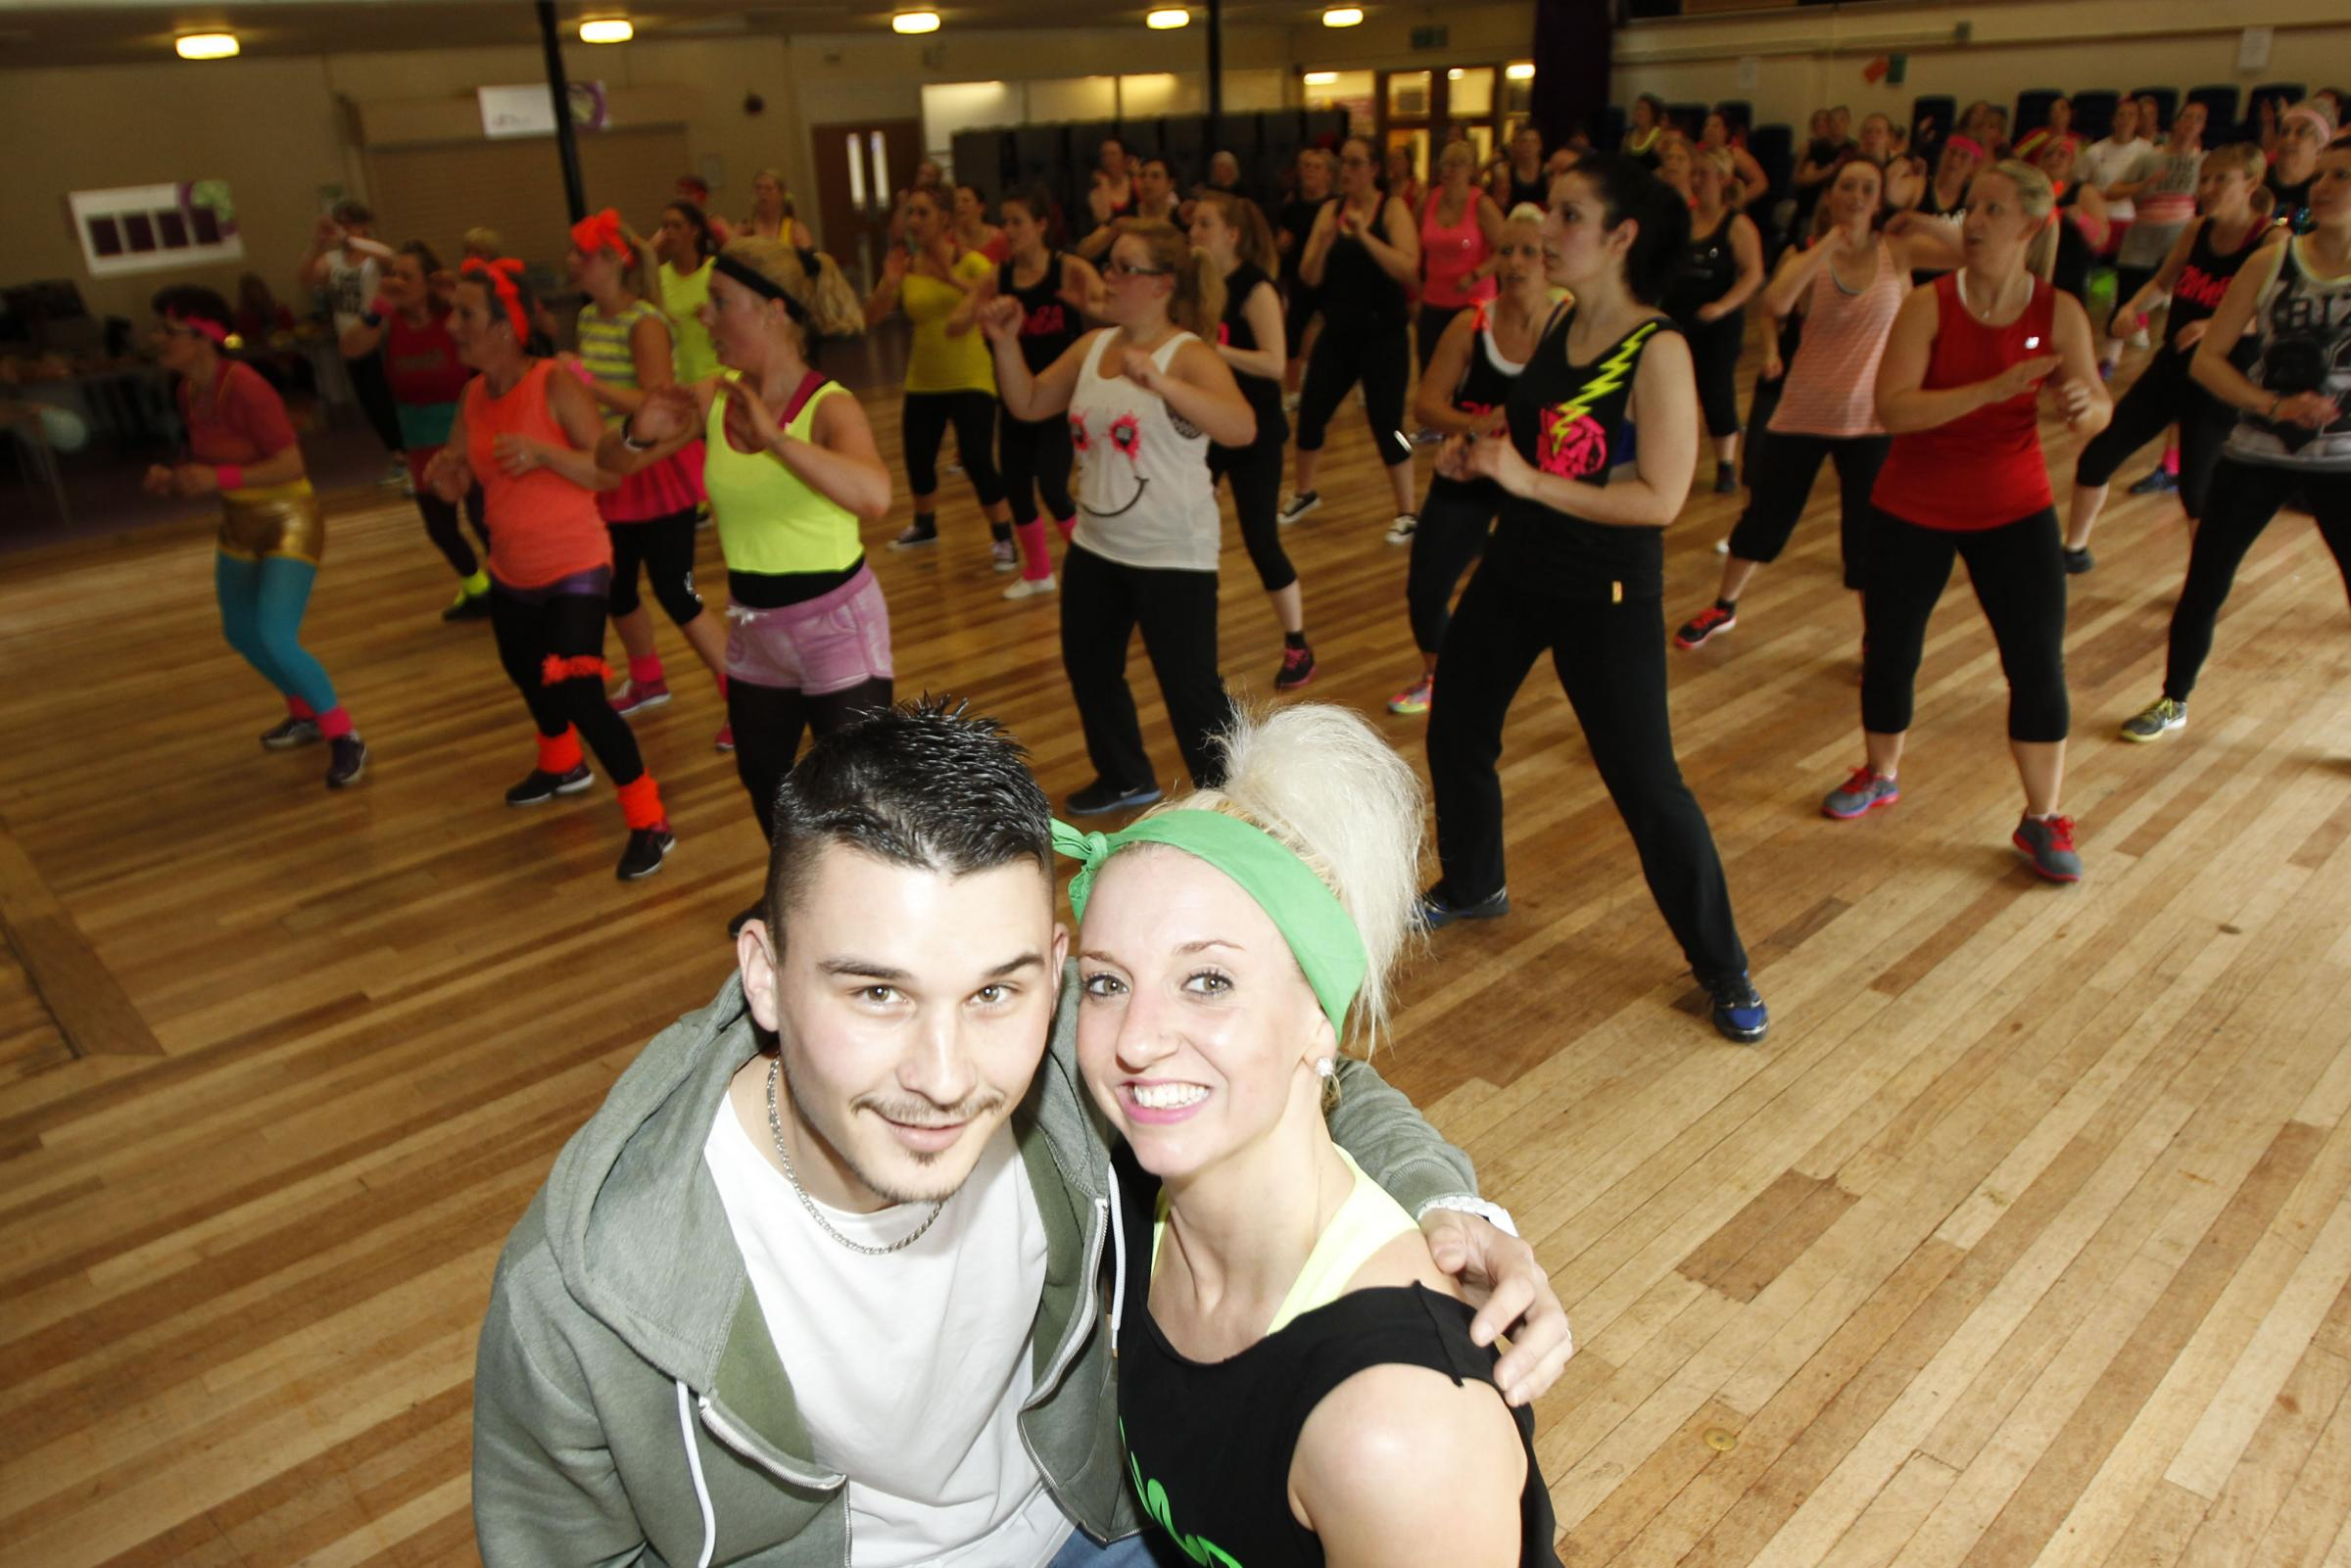 100 participants in charity zumbathon